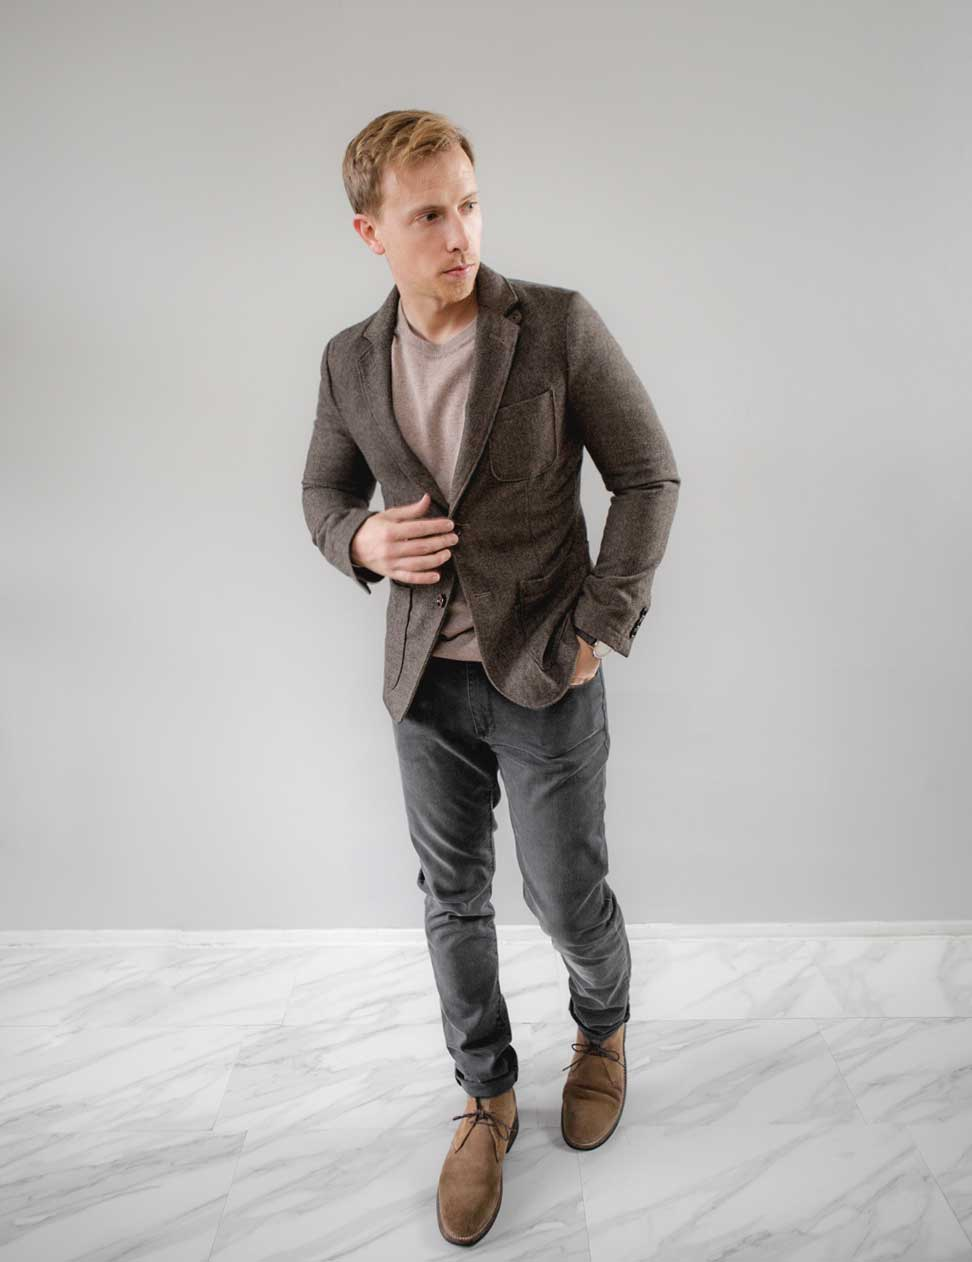 men tweed jacket over sweater gray jeans outfit inspiration